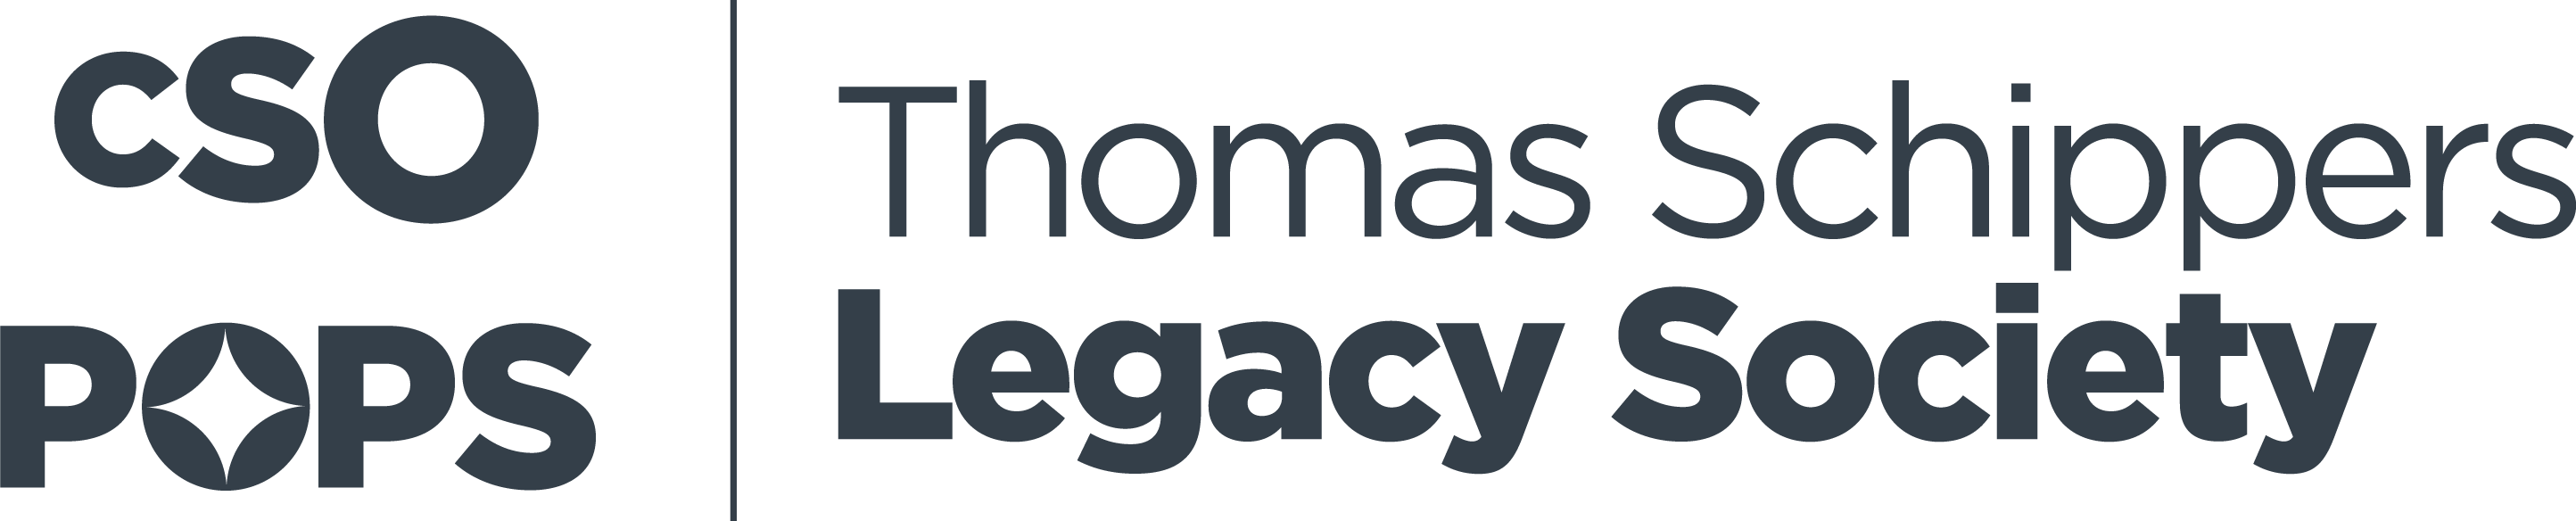 Thomas Schippers Legacy Society